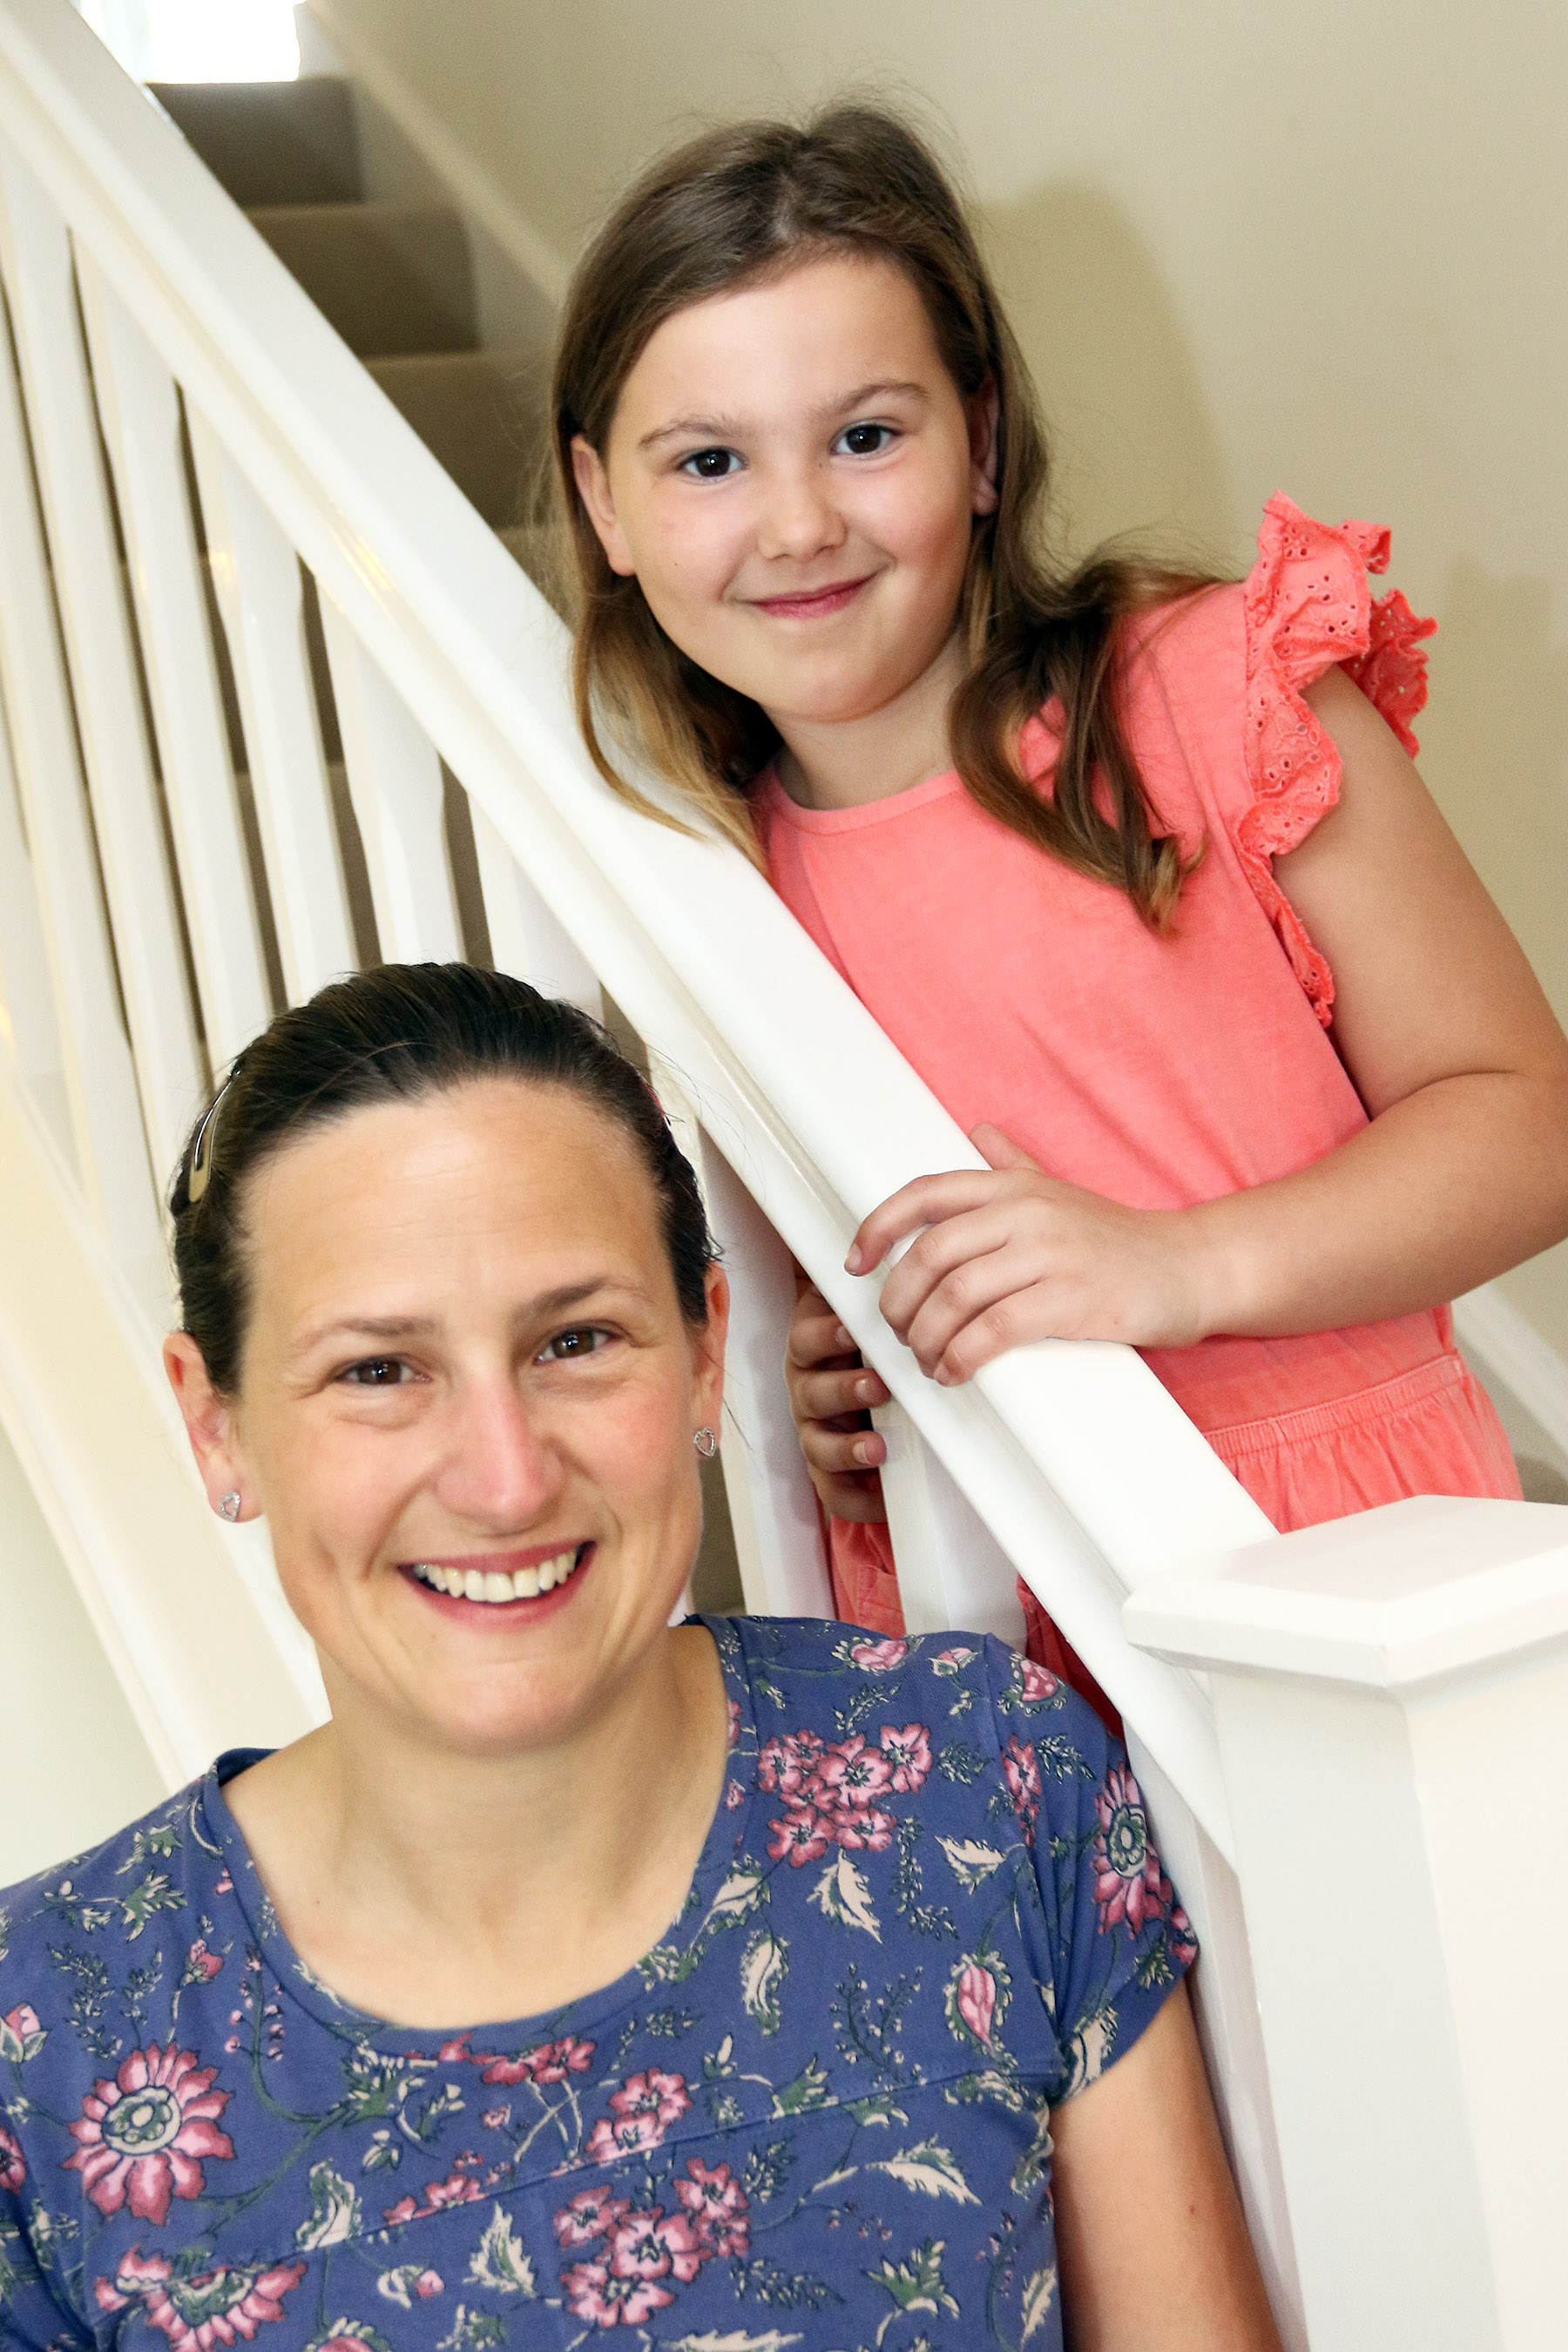 Kate Bye and her eight-year-old daughter Evelyn were looking for their new forever home